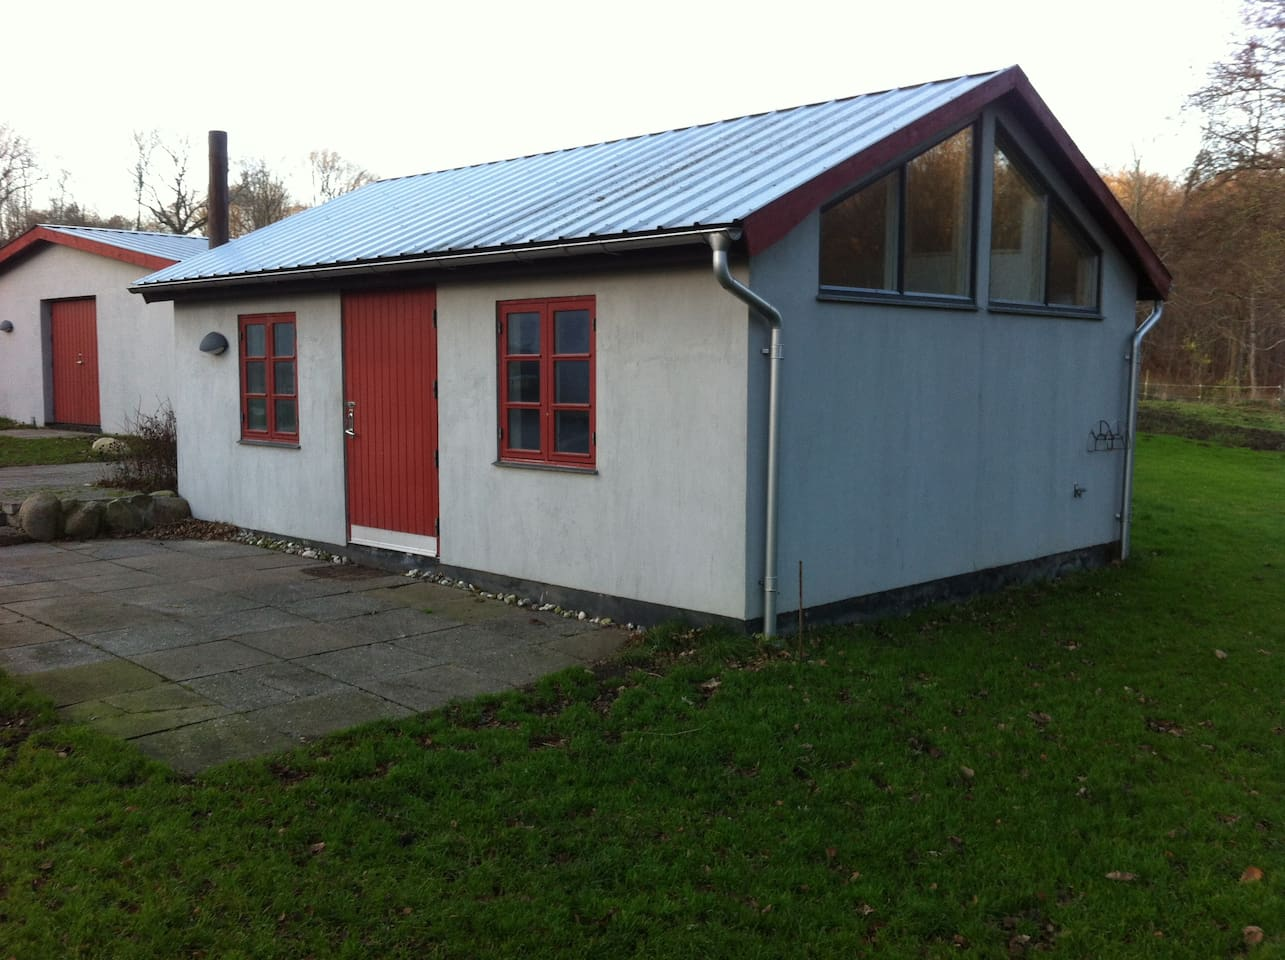 Hønsehuset, 35 sqr.mtr. with a  Patio